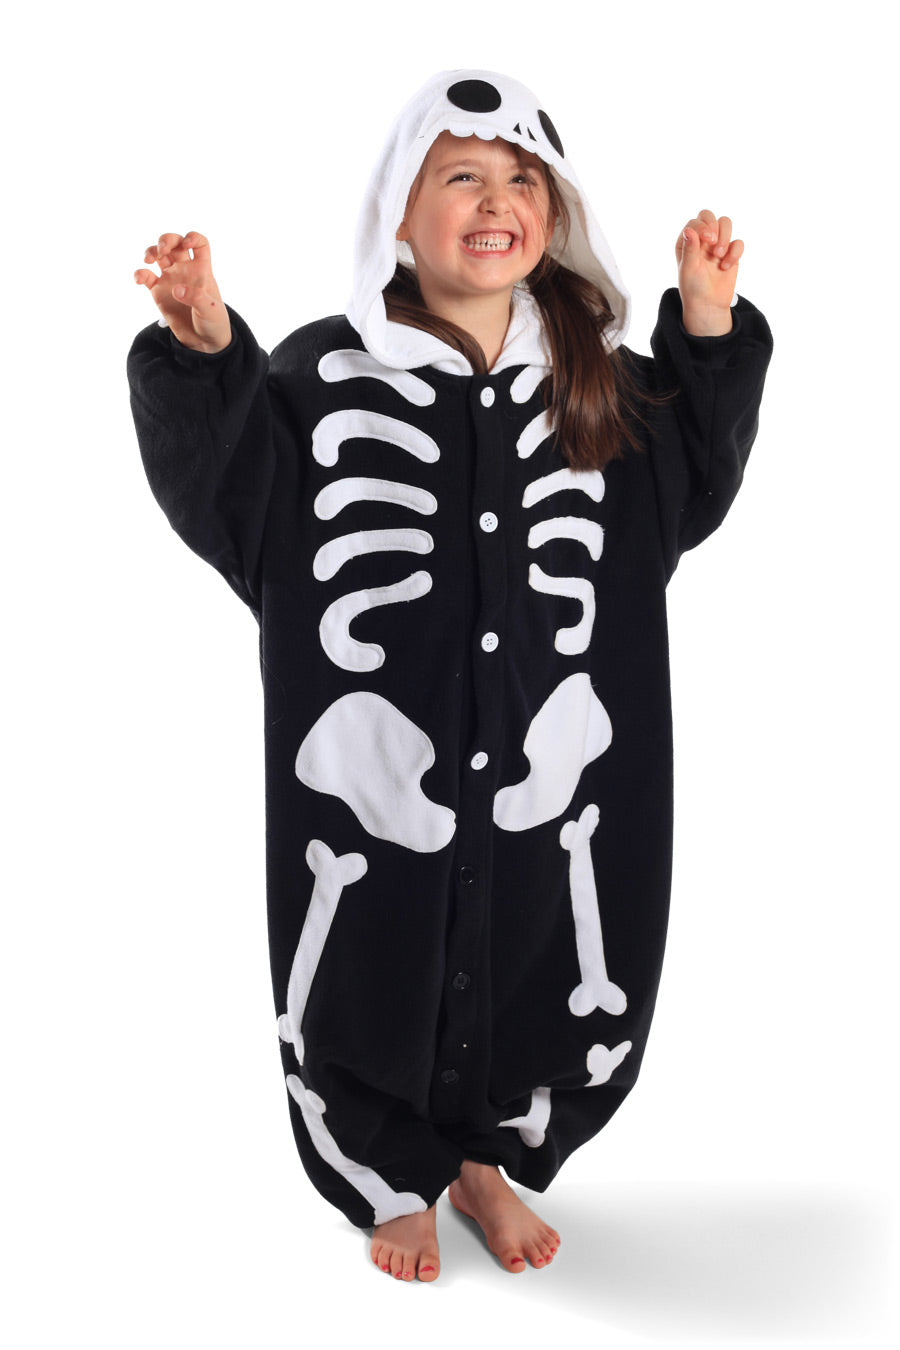 Kids Skeleton Animal Kigurumi Onesie Costume Pajamas Black White Main 130cm